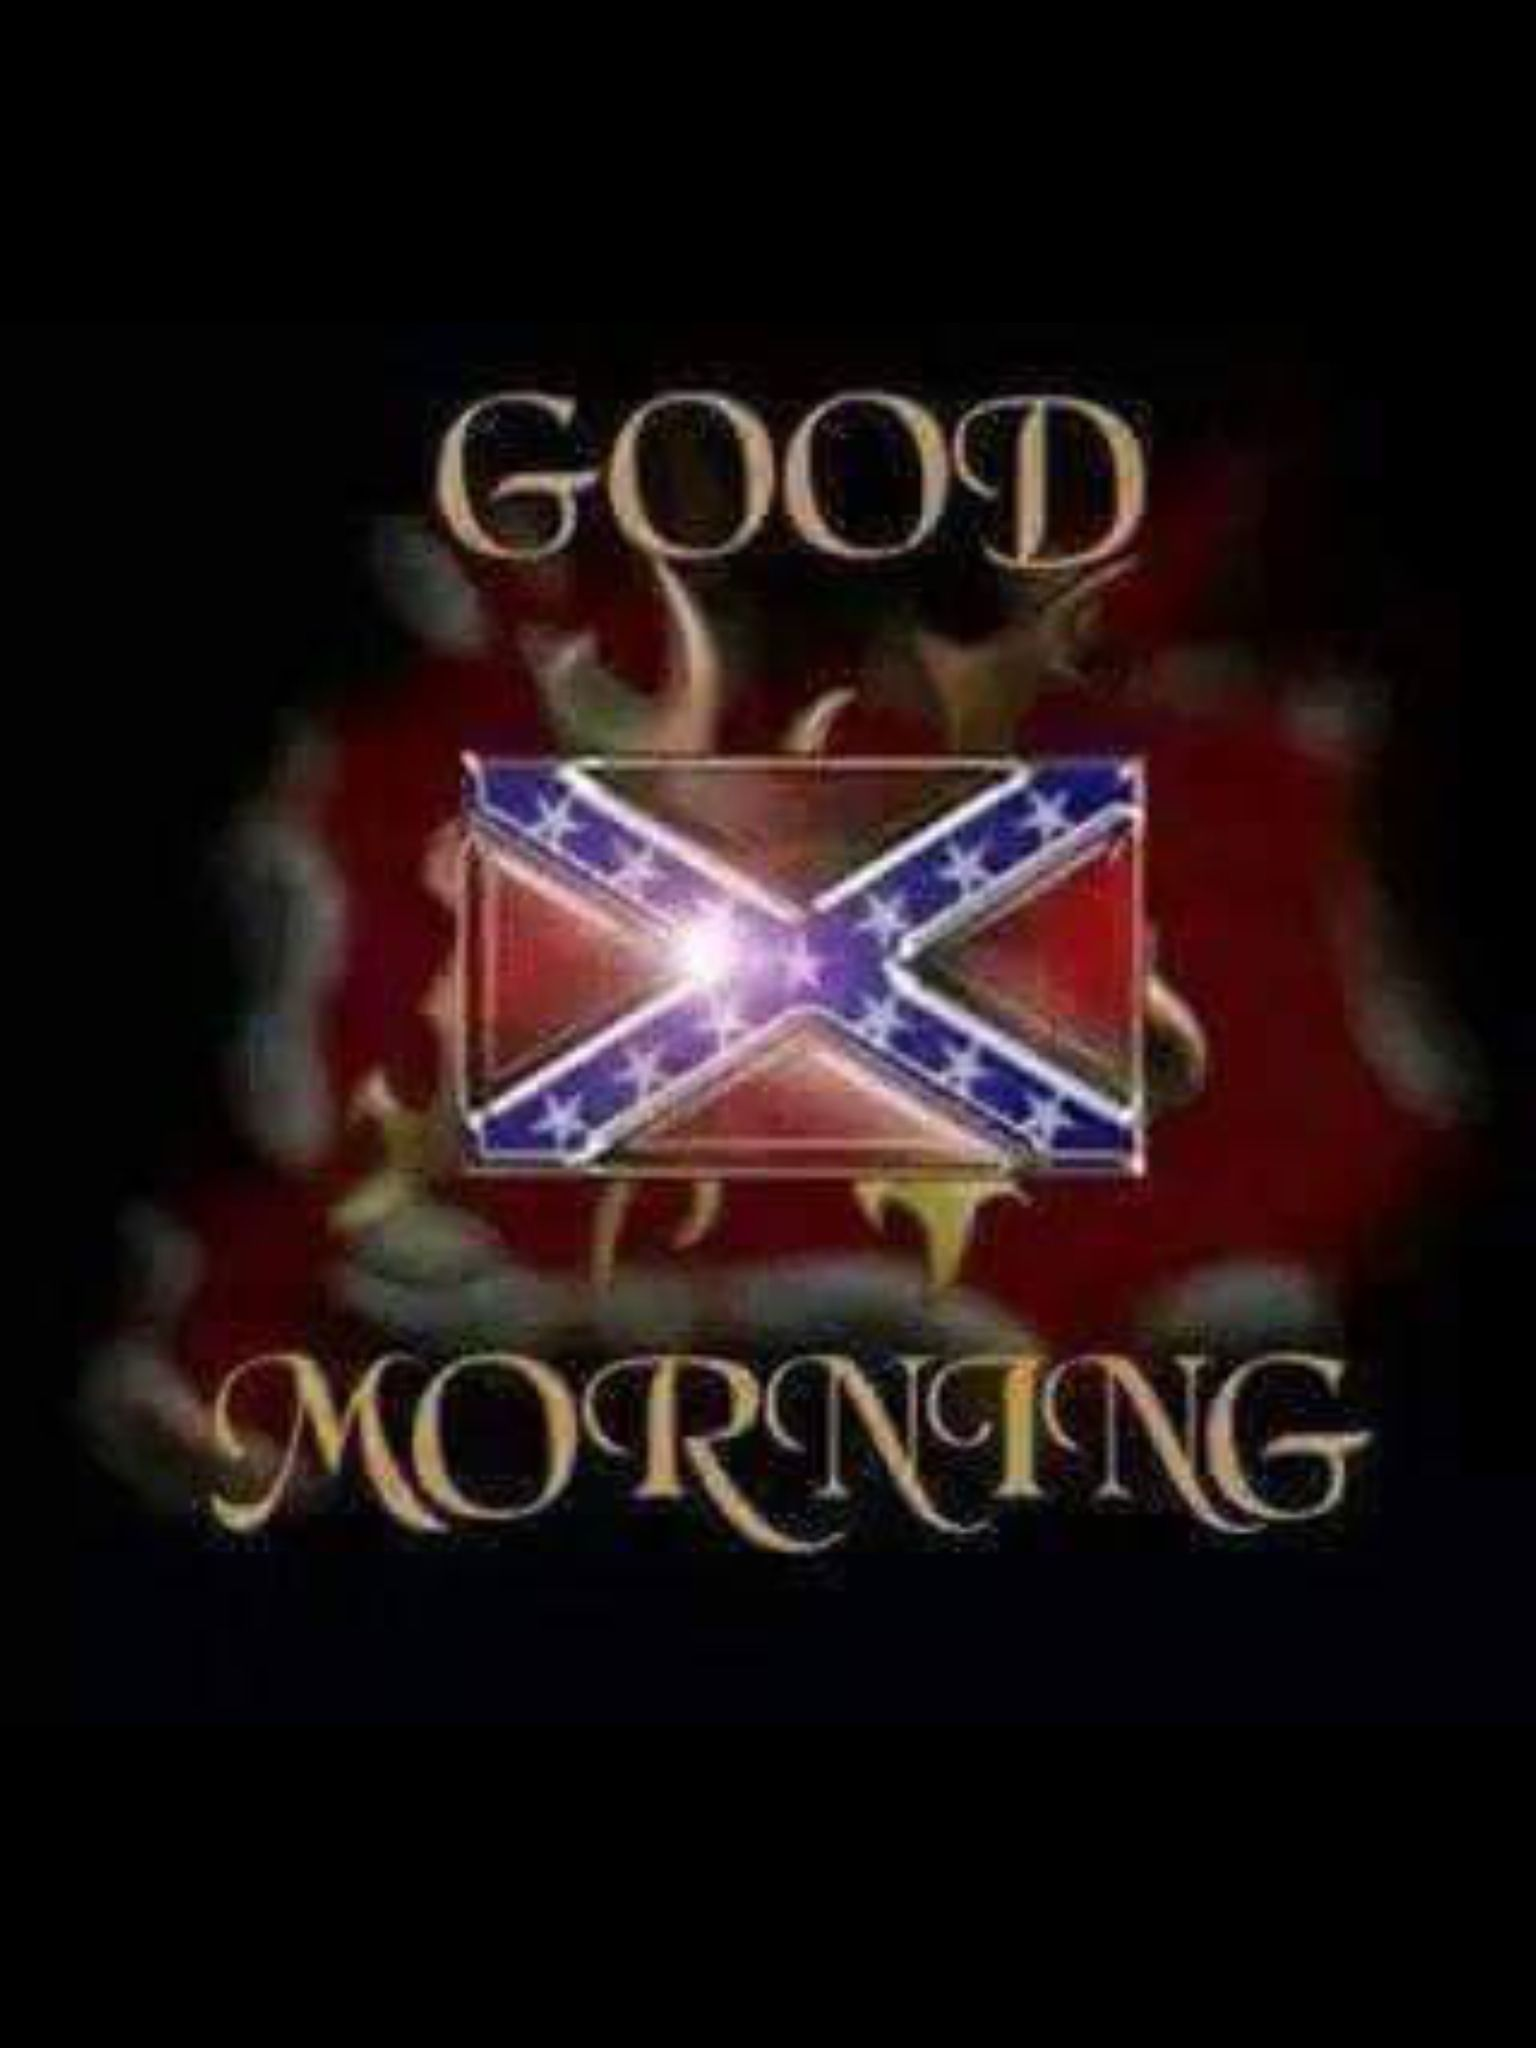 Rebel Flag Wallpaper Google Search Camo Rebel And American - Rebel flag truck decals   how to purchase and get a great value safely